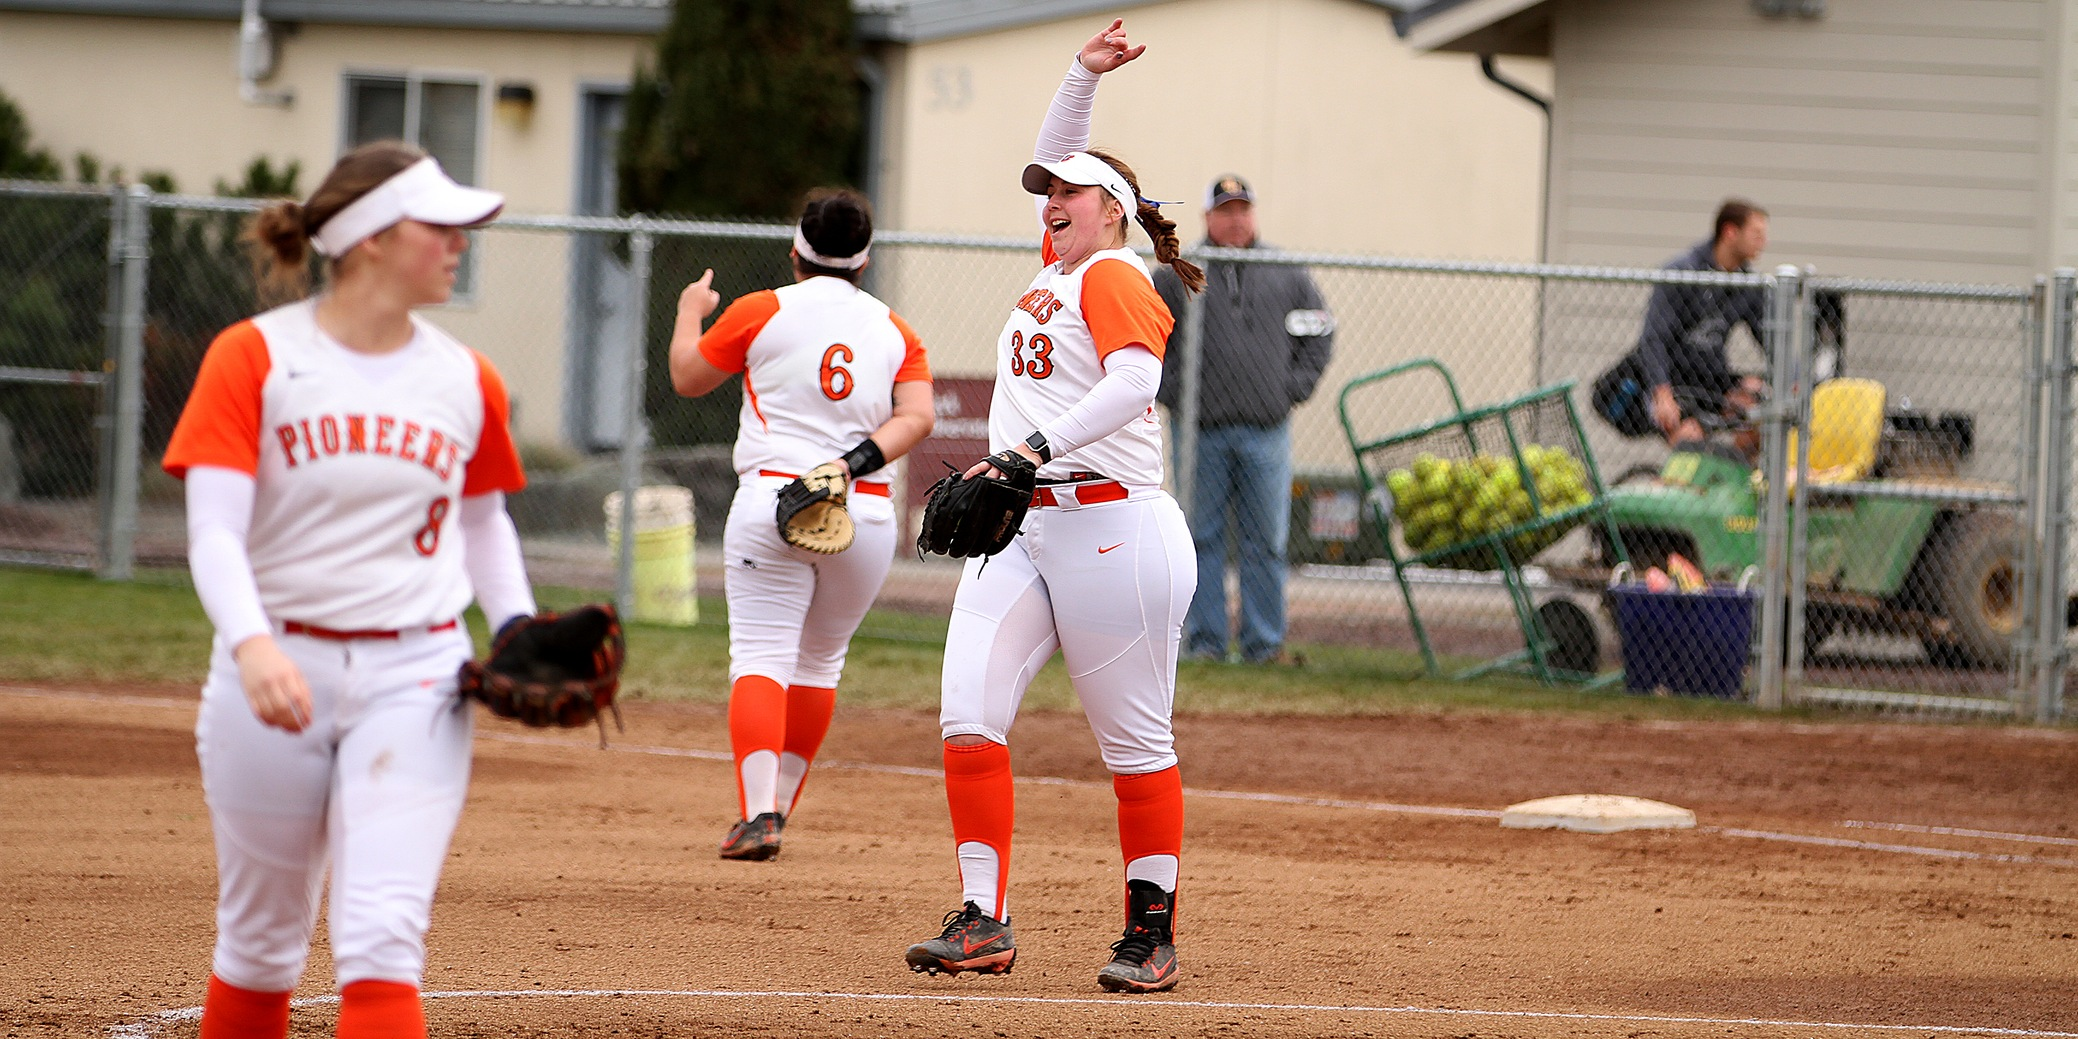 Following a five-inning win in opener, Pios settle for series split at Willamette